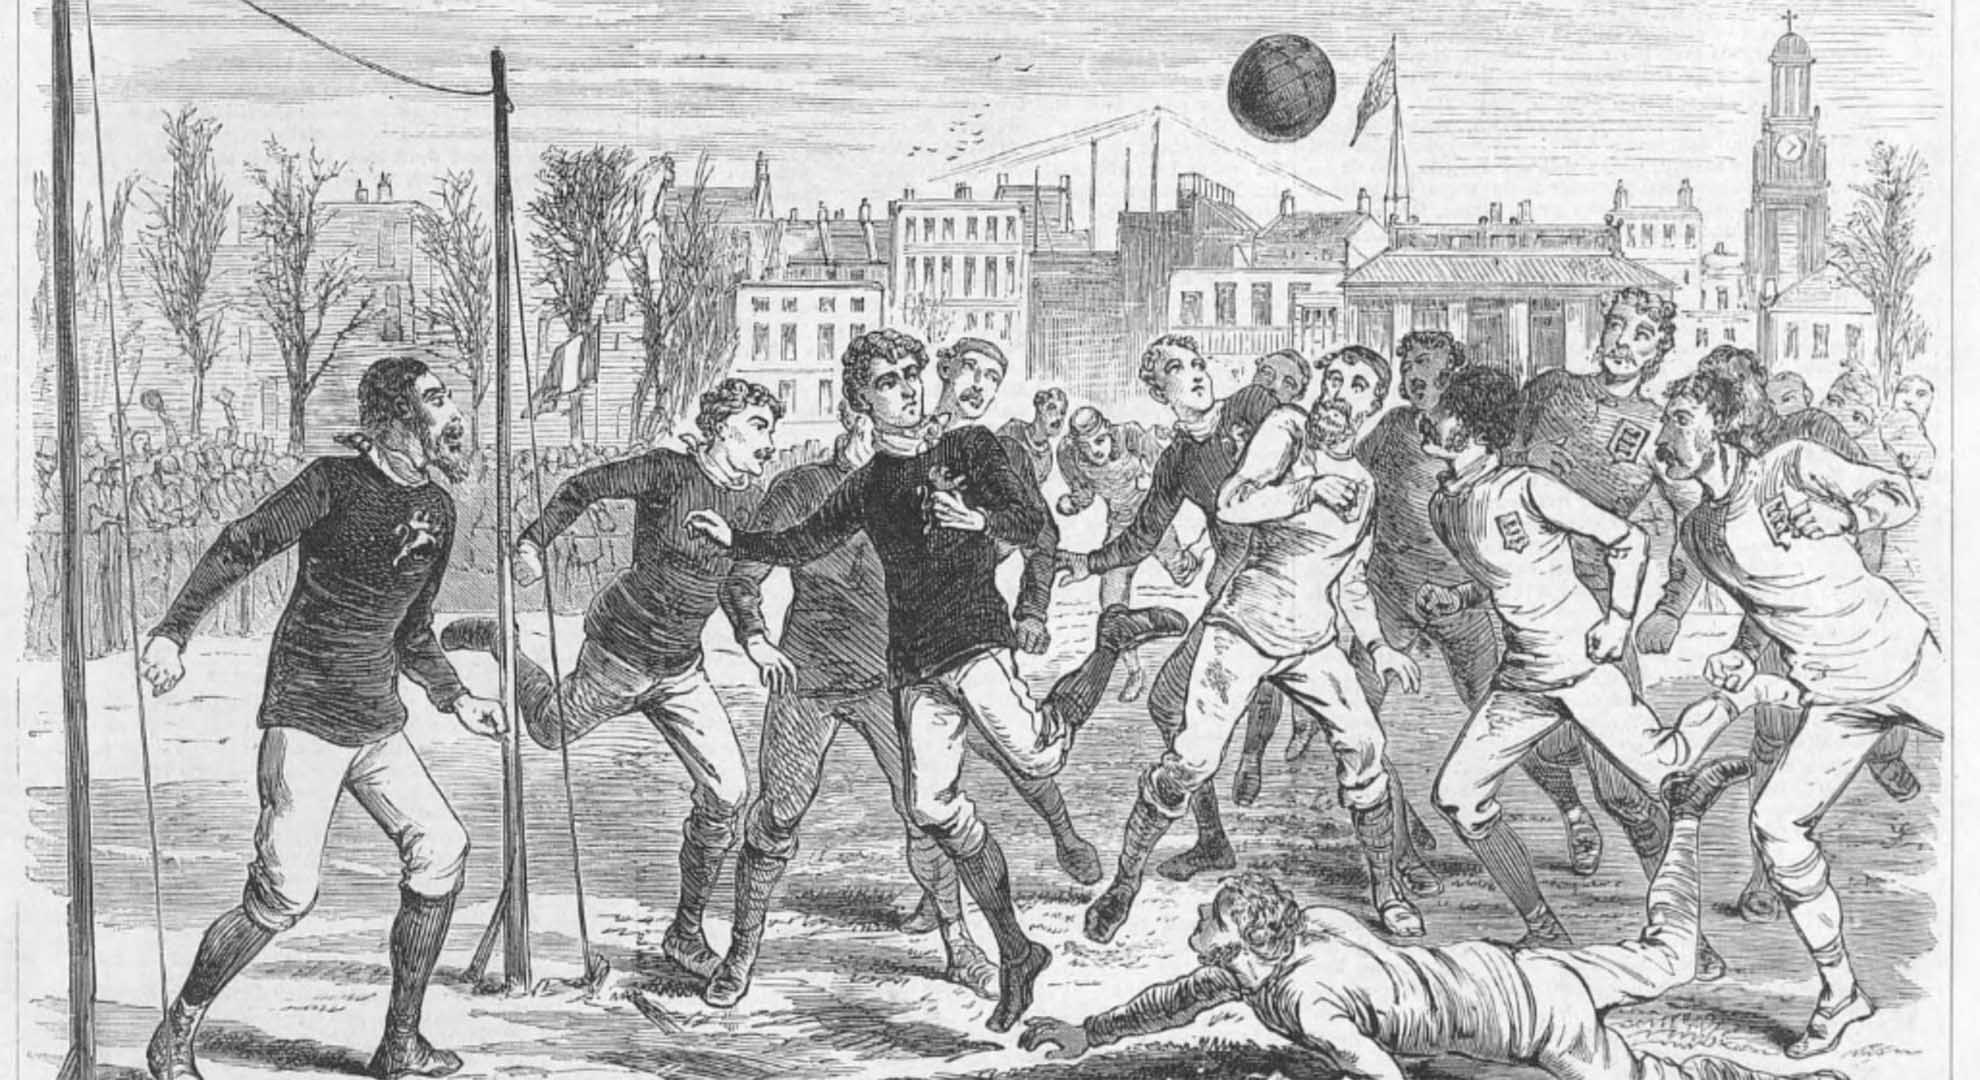 England v Scotland, match played in an ancient field of play in London, 1875